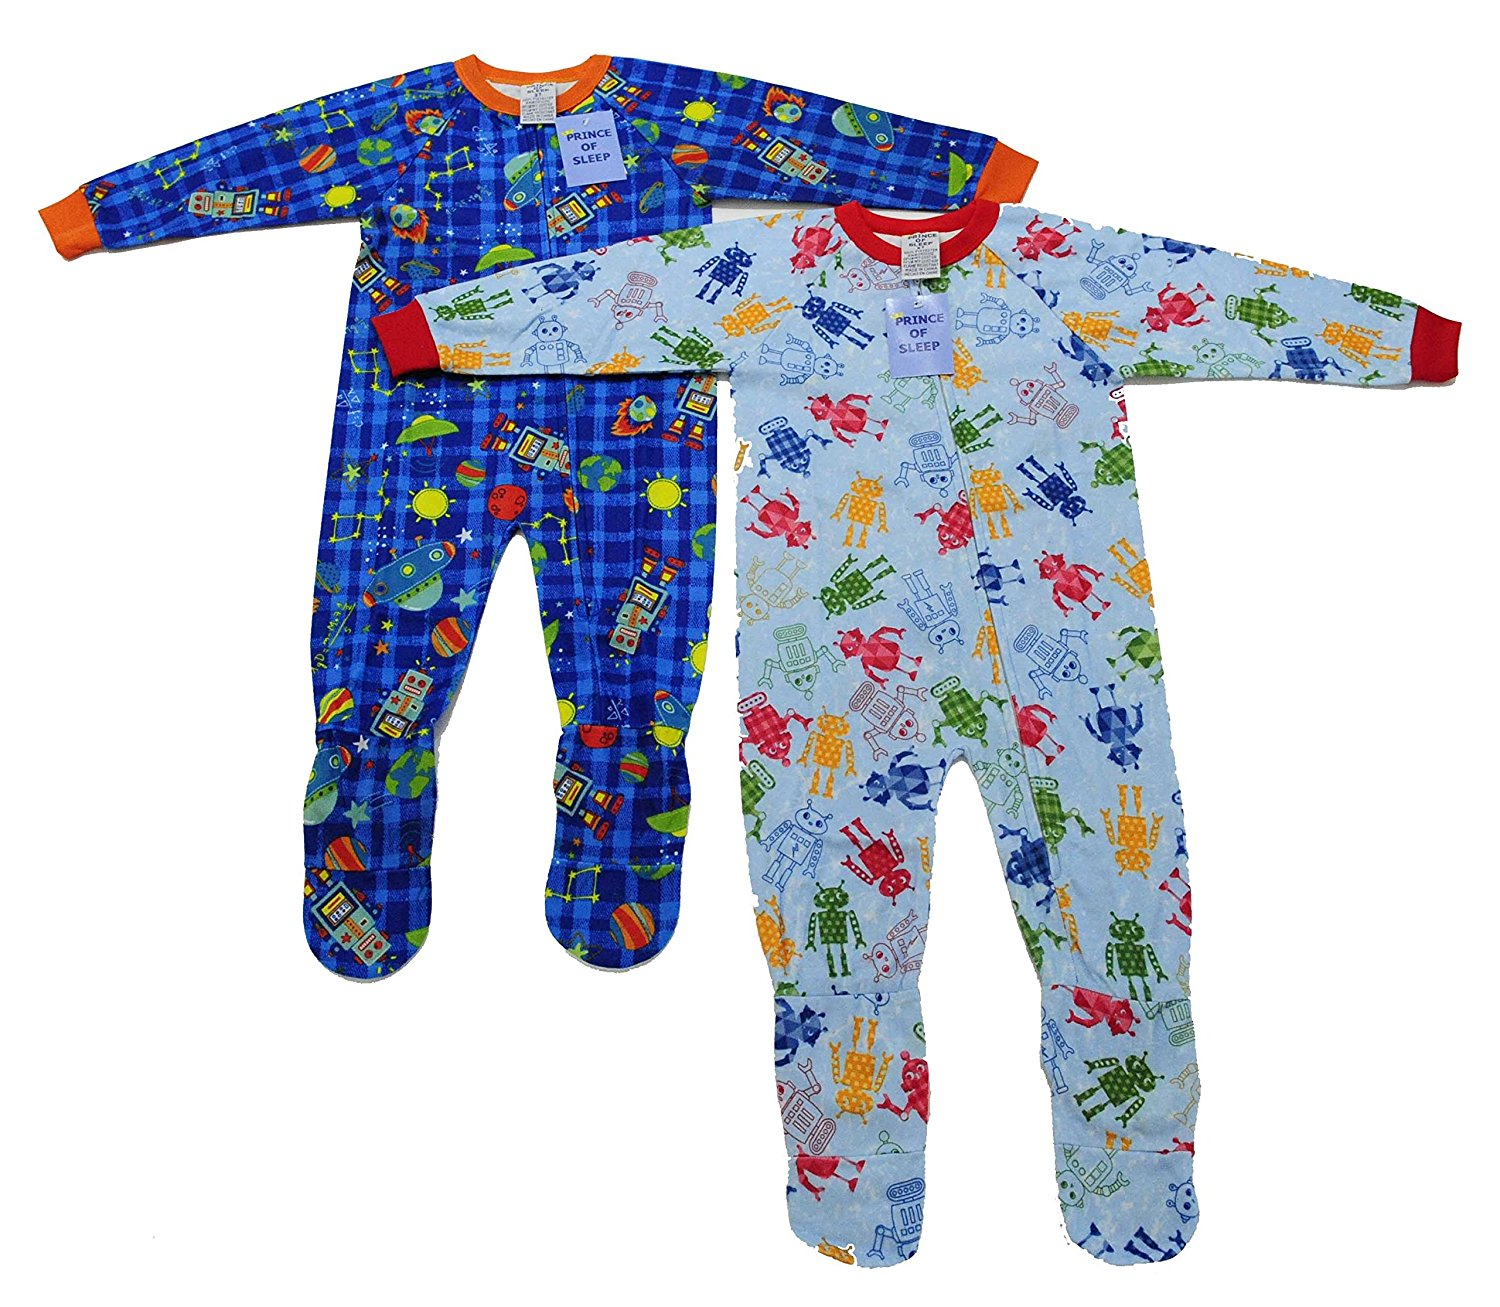 d528f5d941 Get Quotations · Prince of Sleep Footed Pajamas Blanket Sleepers (Pack Of 2)